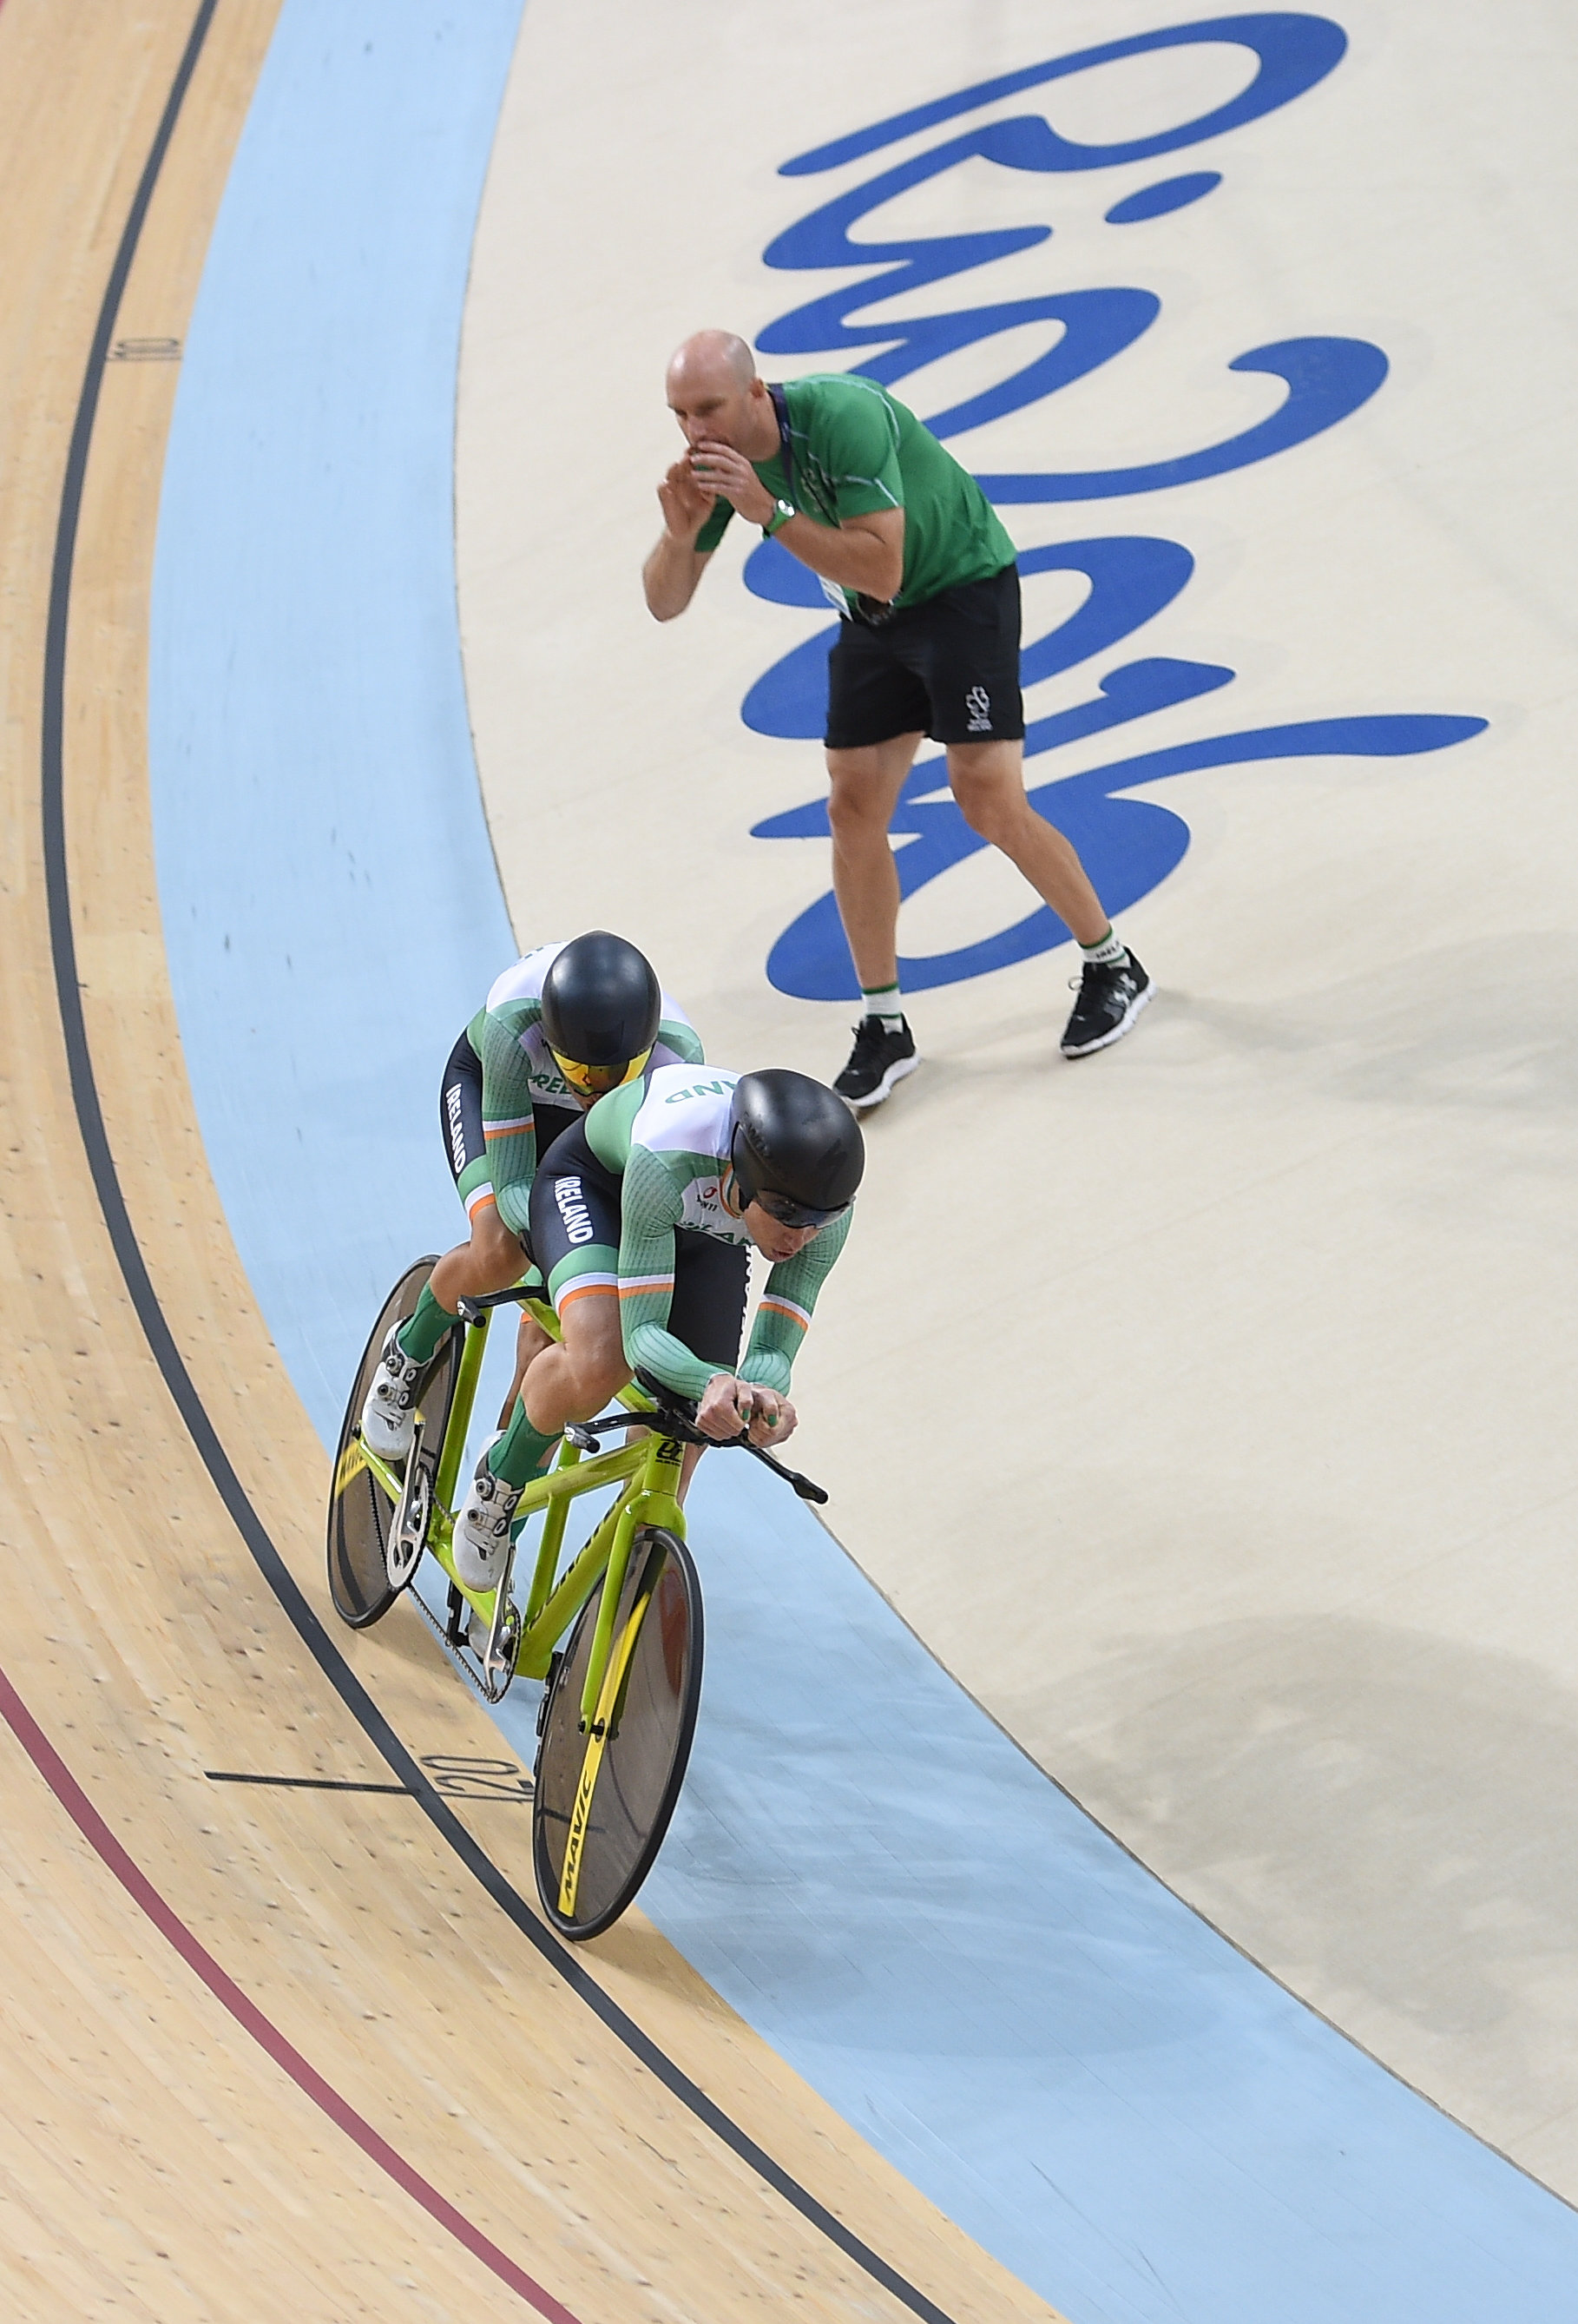 Cycling: Katie George Dunlevy & Pilot Eve McCrystal in the Individual Kilo B Final